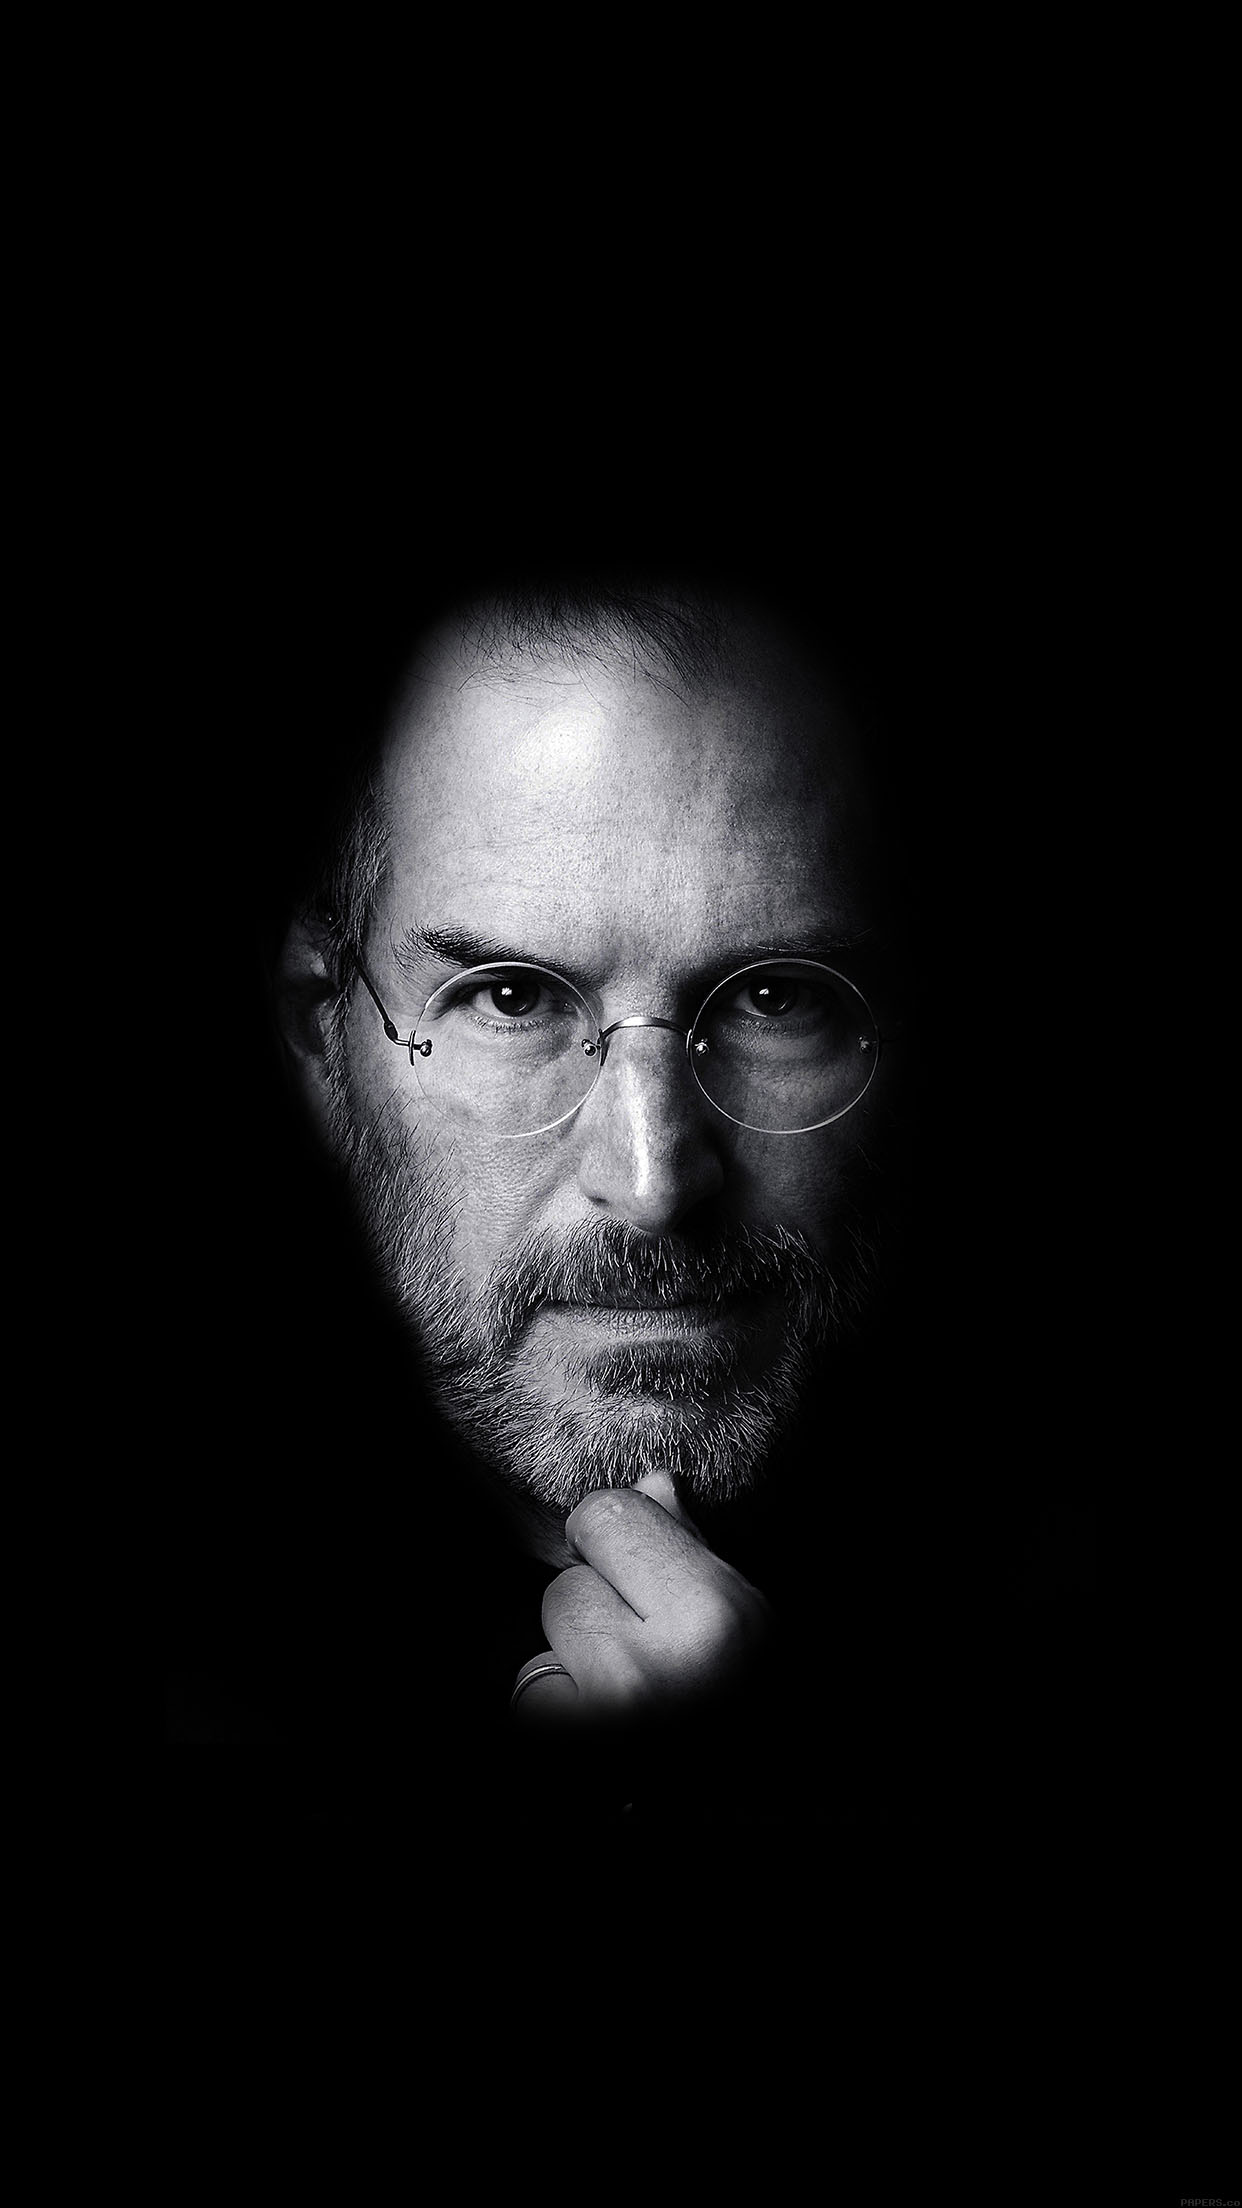 wallpaper steve jobs face apple android wallpaper android hd wallpapers